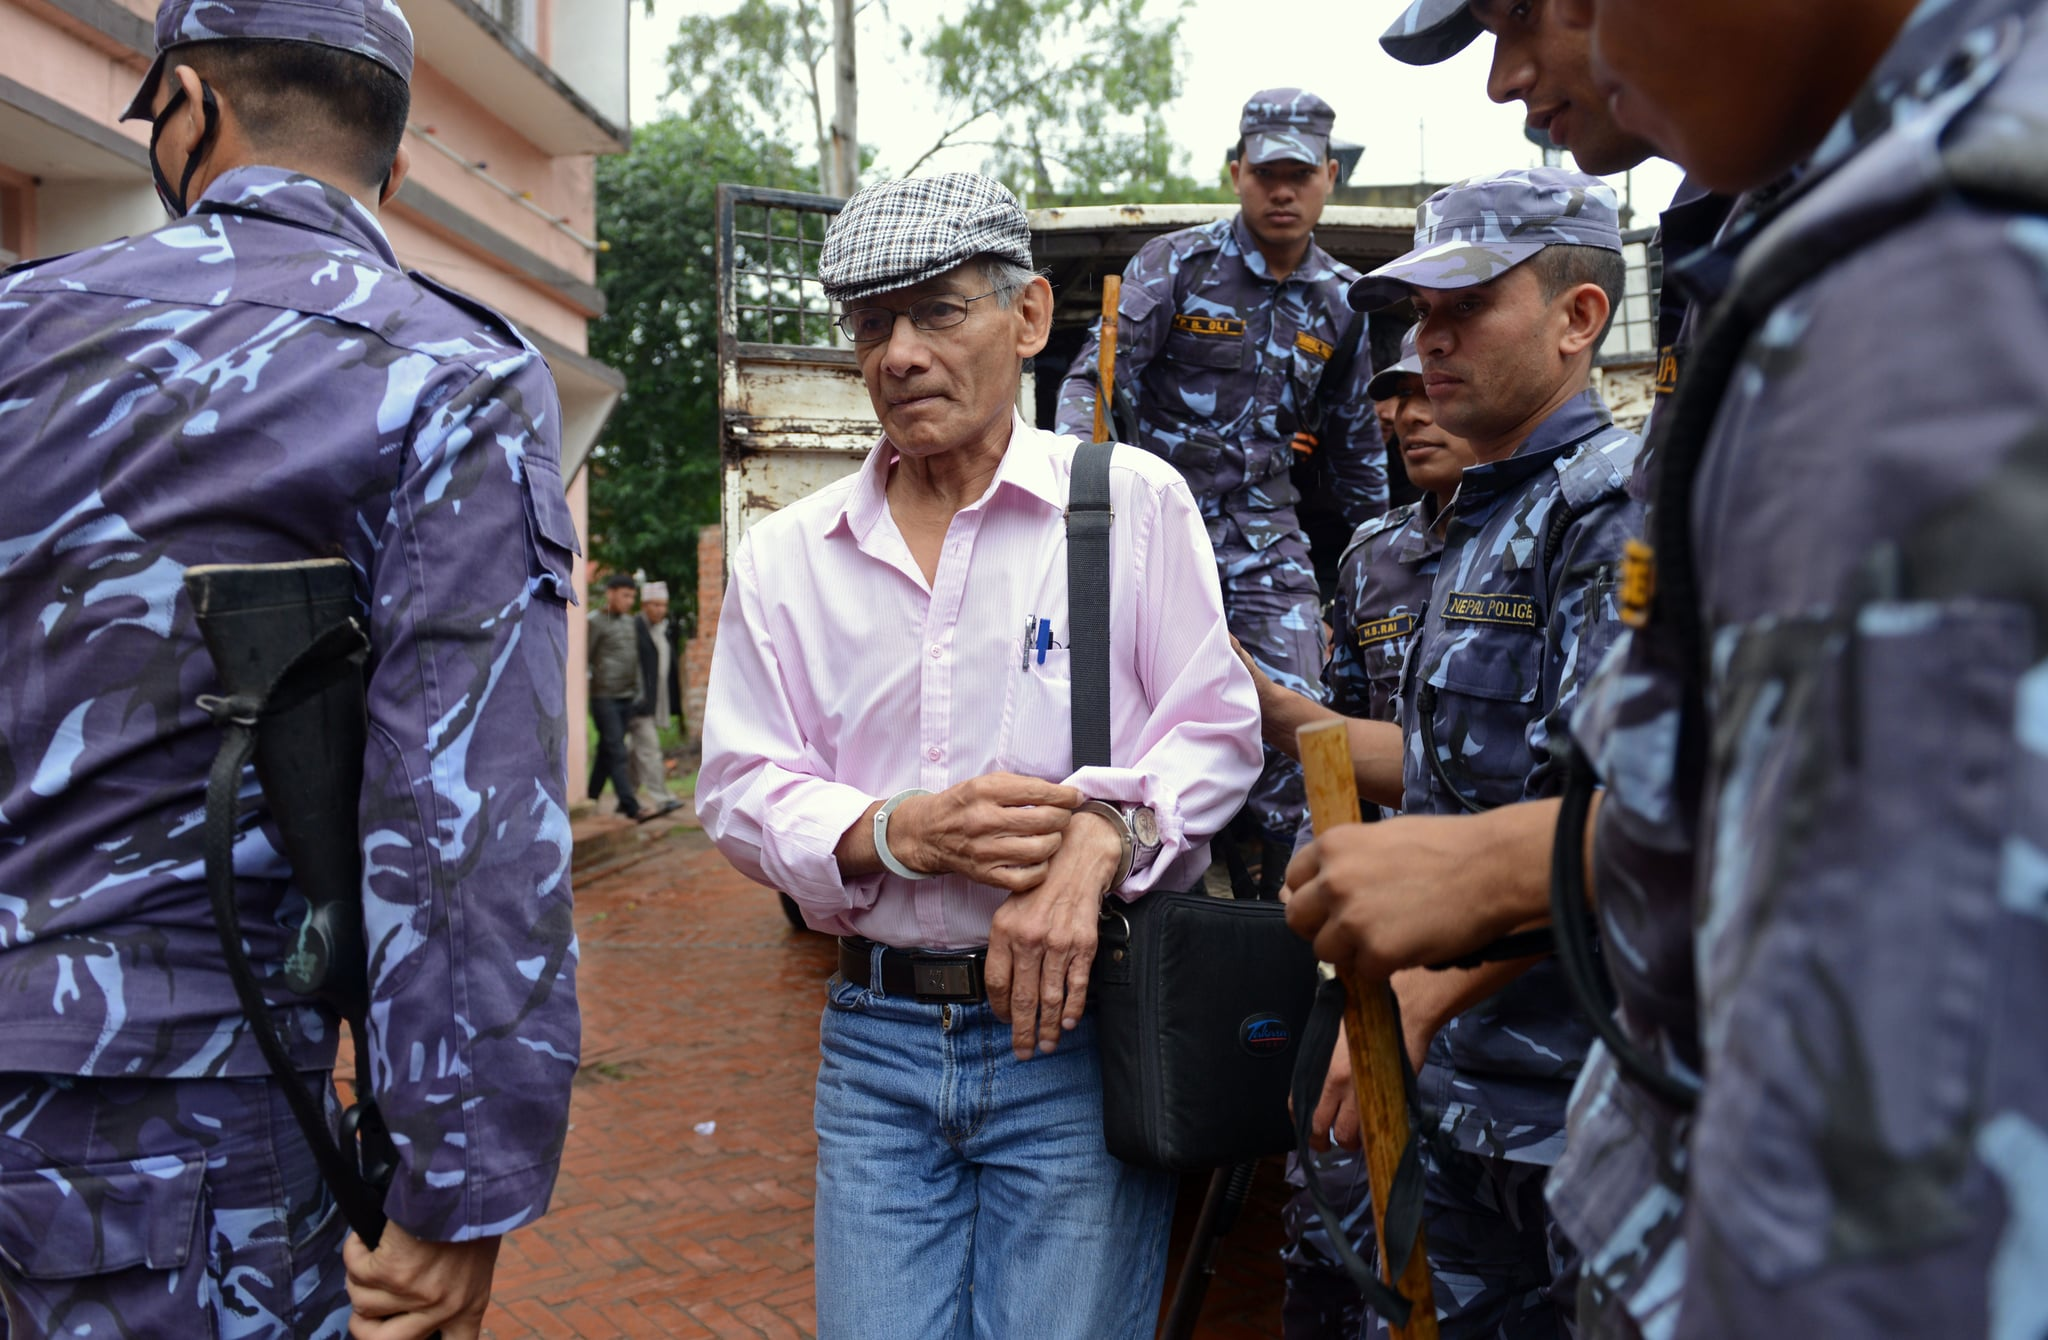 French serial killer Charles Sobhraj (C) is brought to the district court for a hearing on a case related to the murder of Canadian backpacker Laurent Ormond Carriere, in Bhaktapur on May 26, 2014. Sobhraj, a French citizen who is serving a life sentence in Nepal for the murder of an American backbacker in 1975, has been linked with a string of killings across Asia in the 1970s, earning the nickname